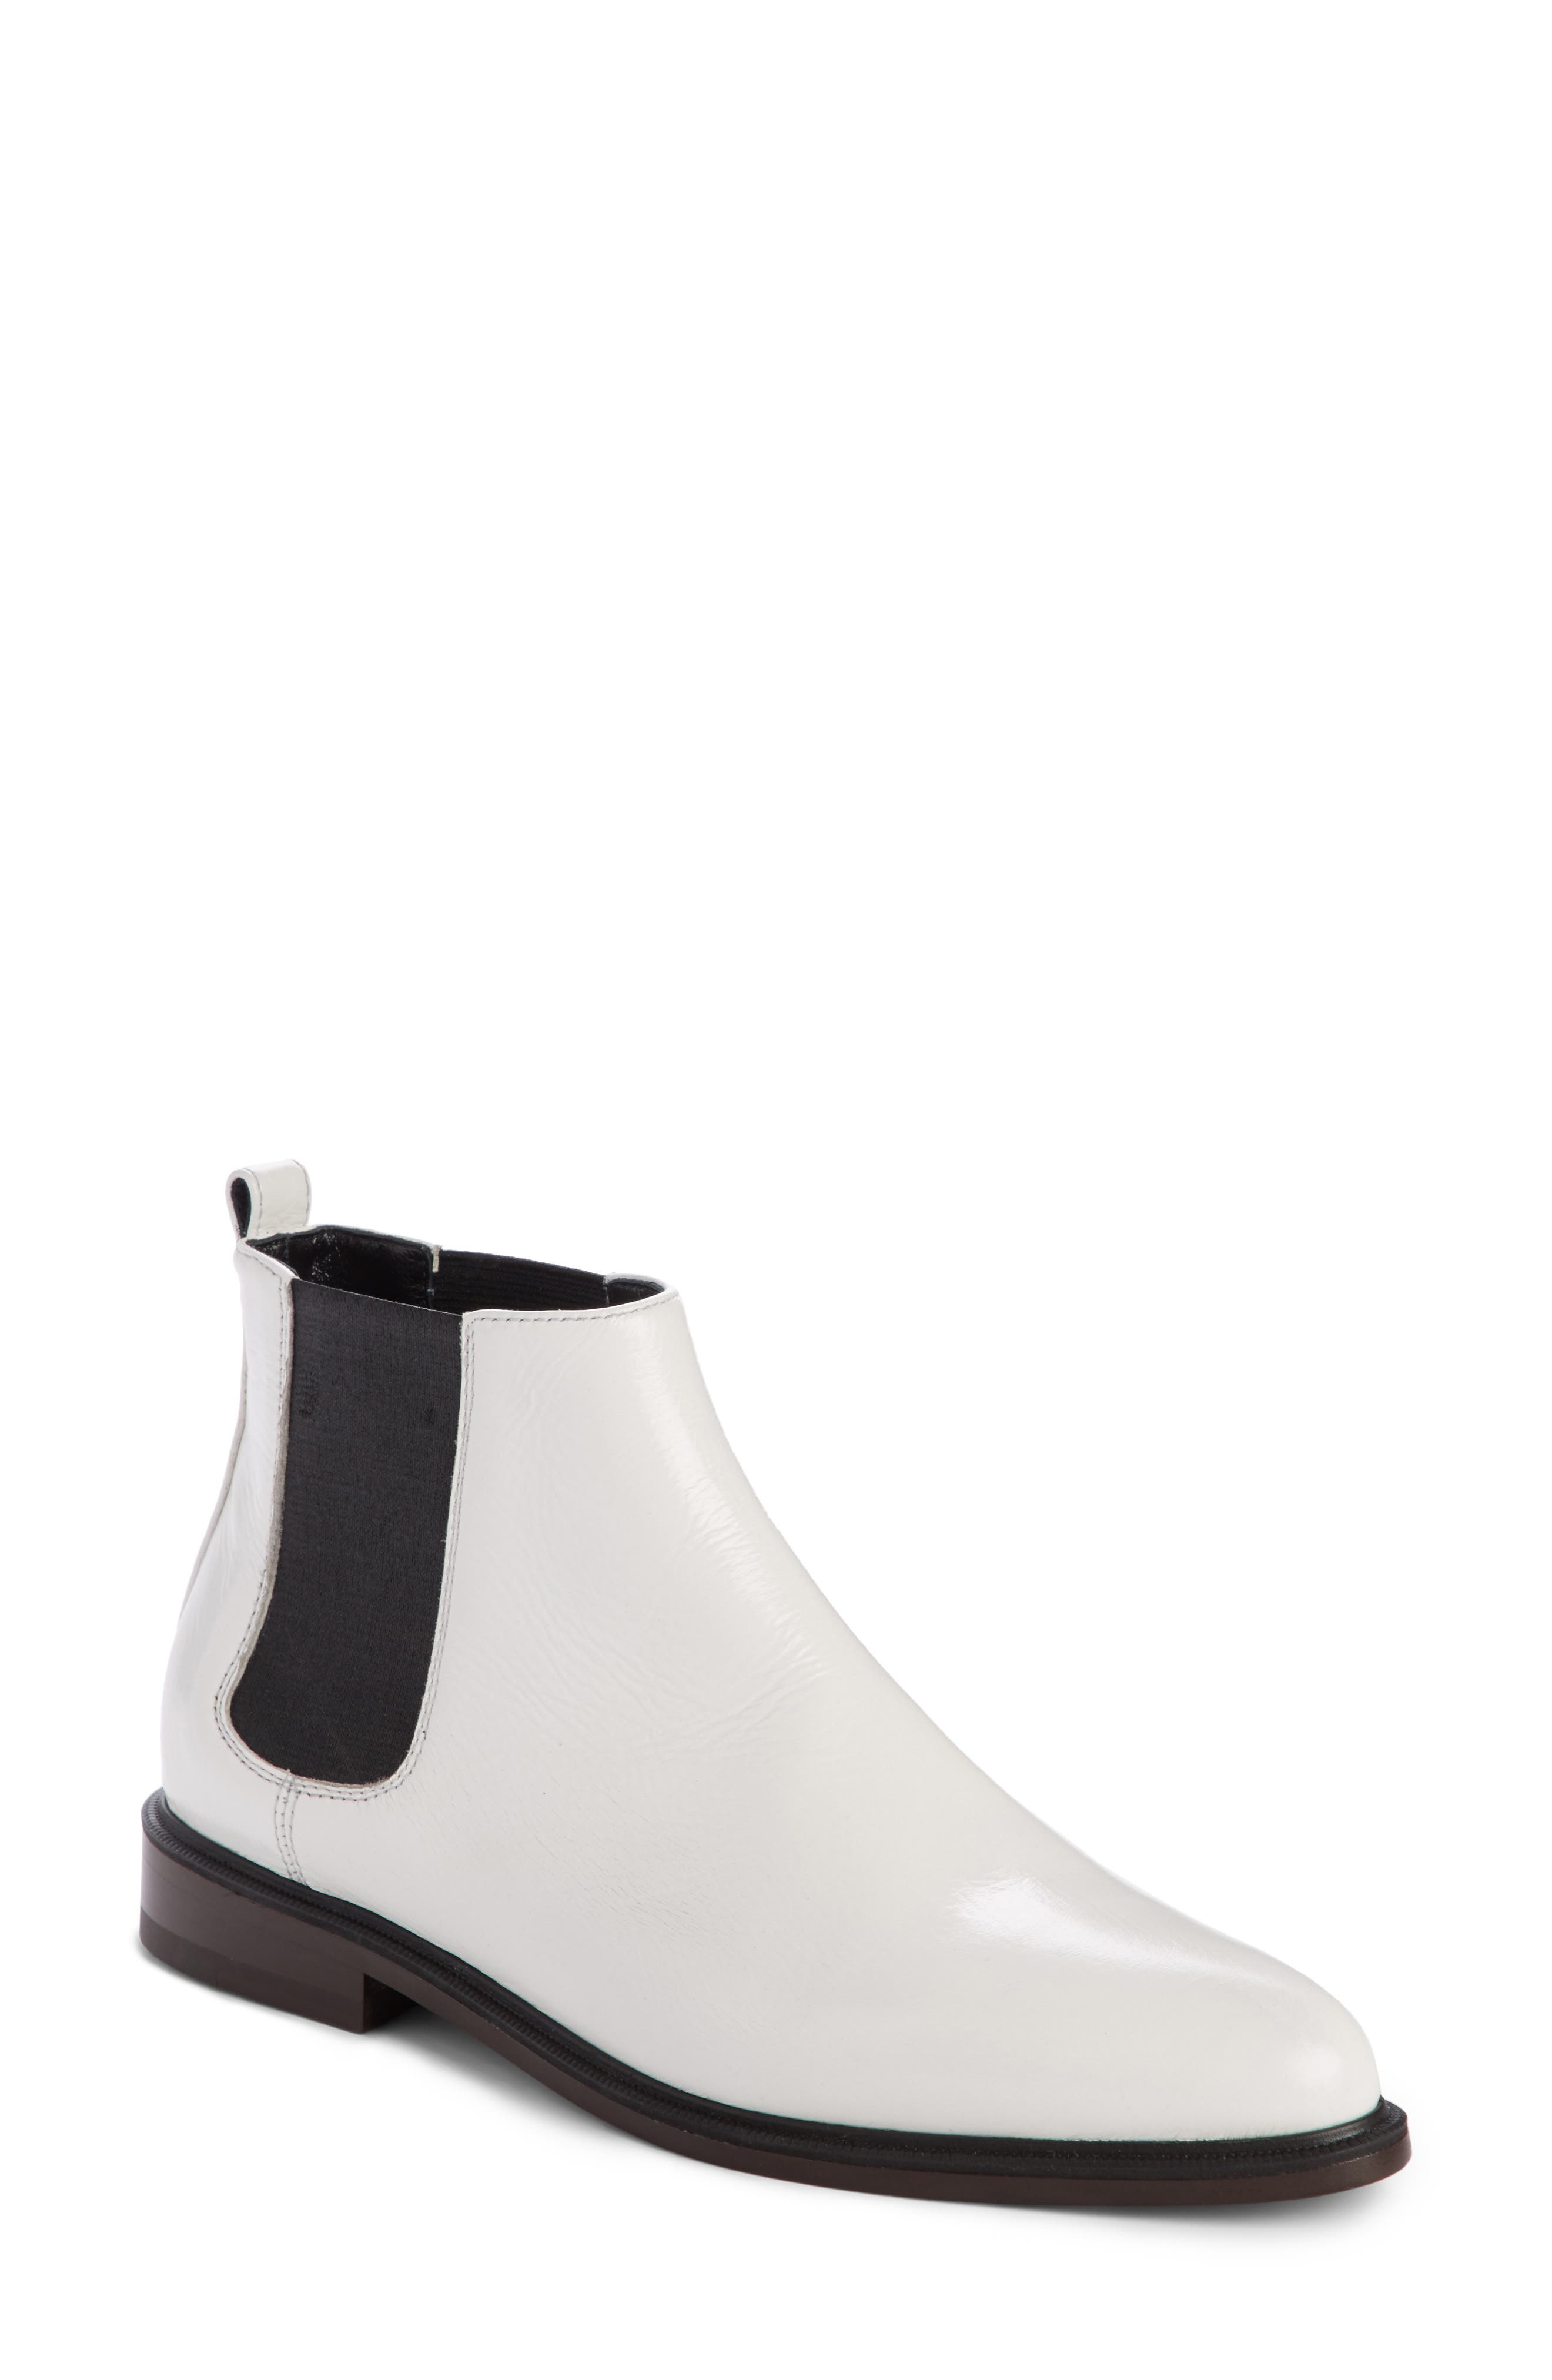 Chelsea Boot,                         Main,                         color, 100